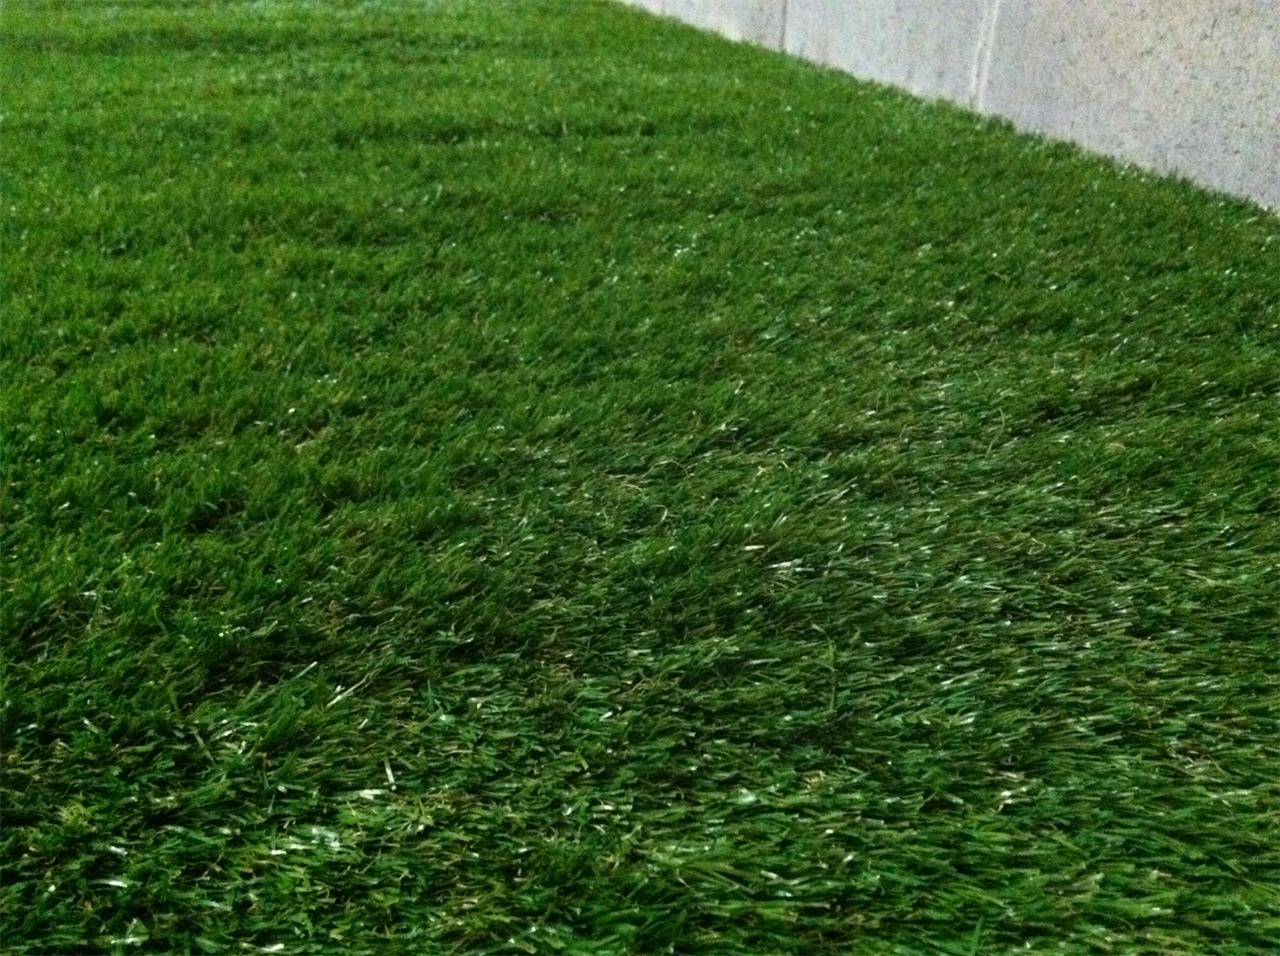 Bunnings Turf Prices New Synthetic Artificial Grass Turf 30 Sqm Roll 35 Mm